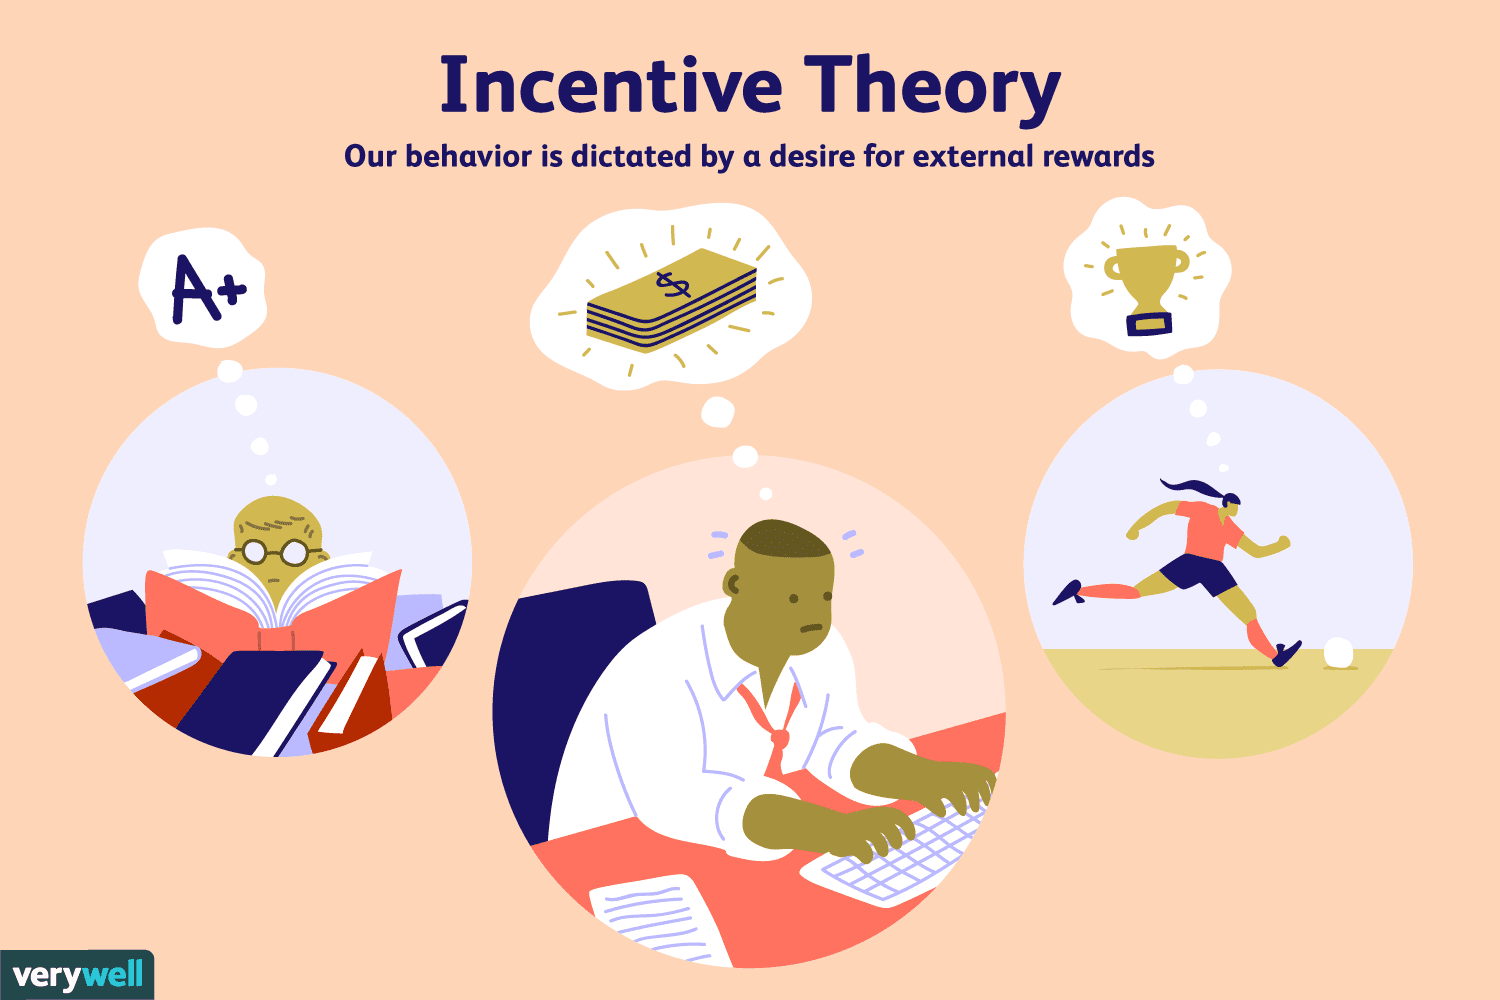 """Here picture represents the Incentive Theory, based the idea that good grades will  successful life. But when it comes to """"good grades good life"""", however that's easier said than done."""